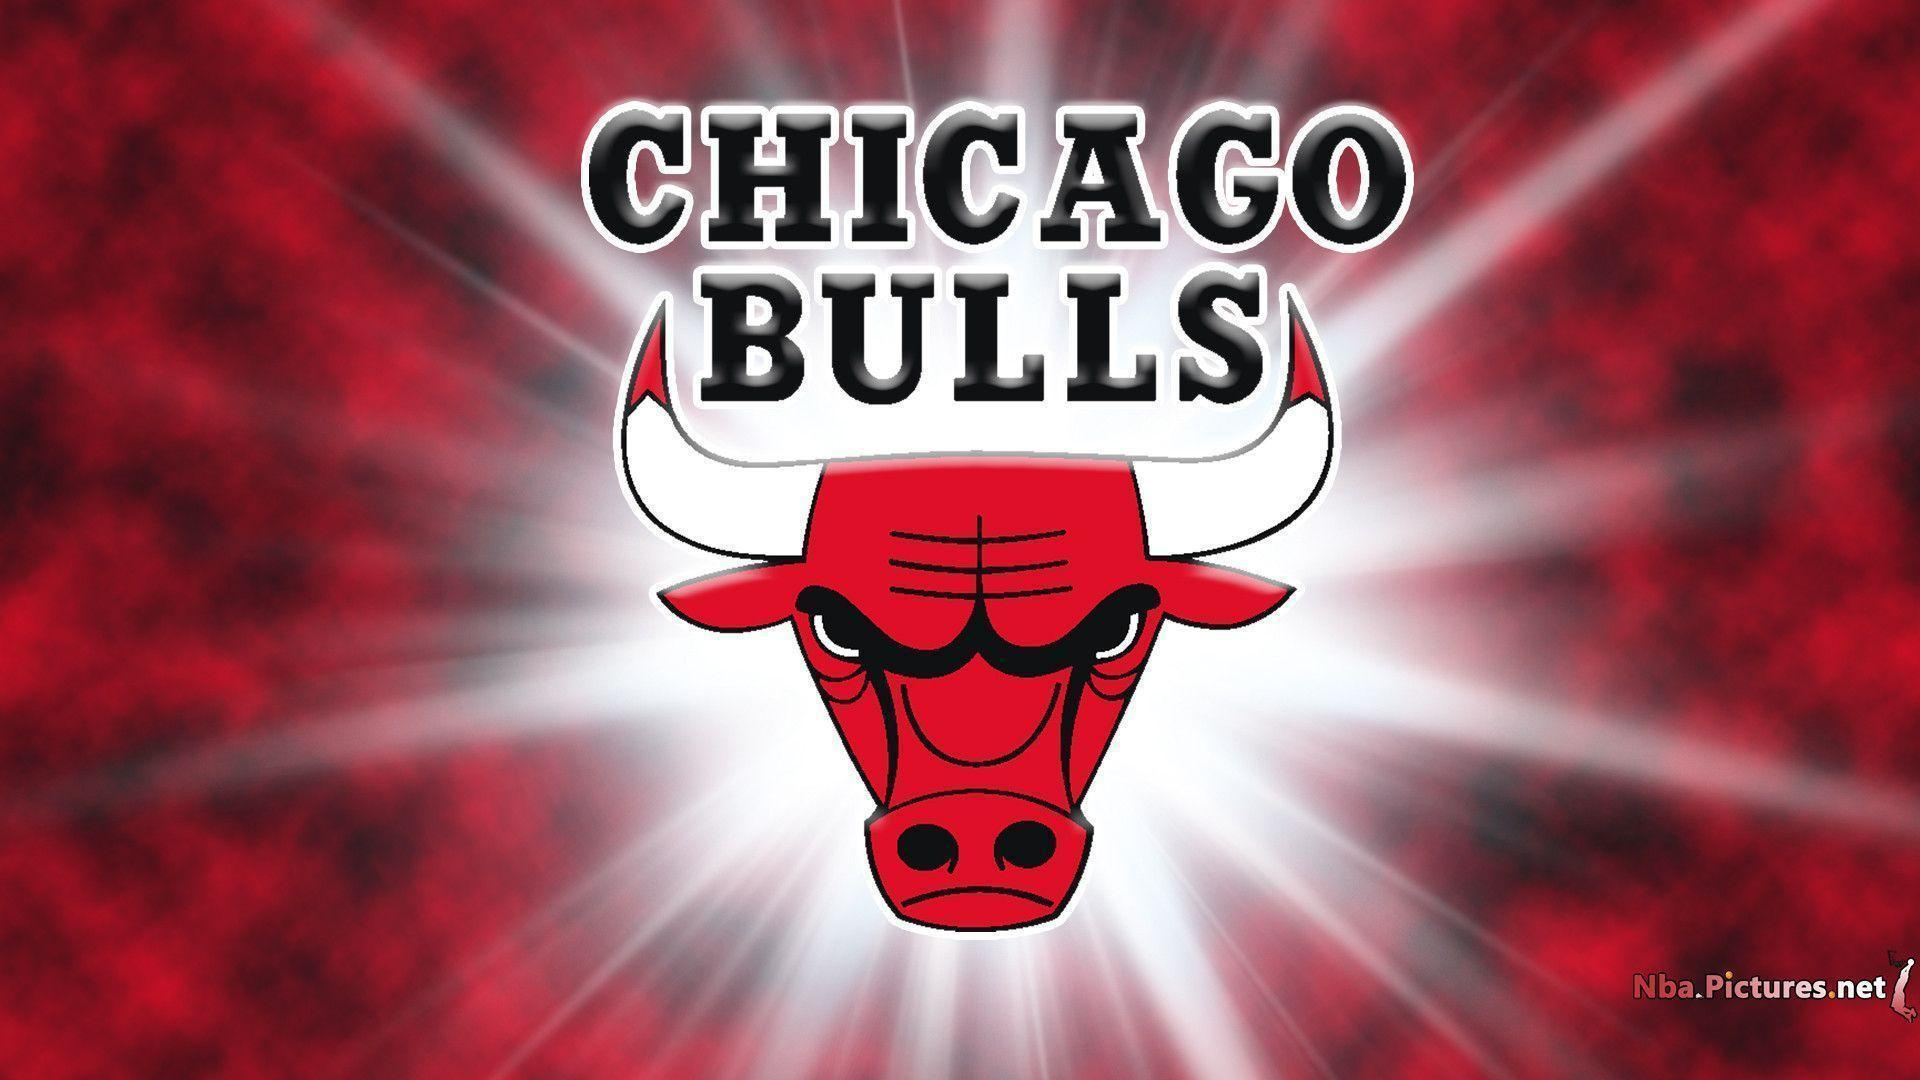 Image For > Chicago Bulls Wallpapers Hd 2014